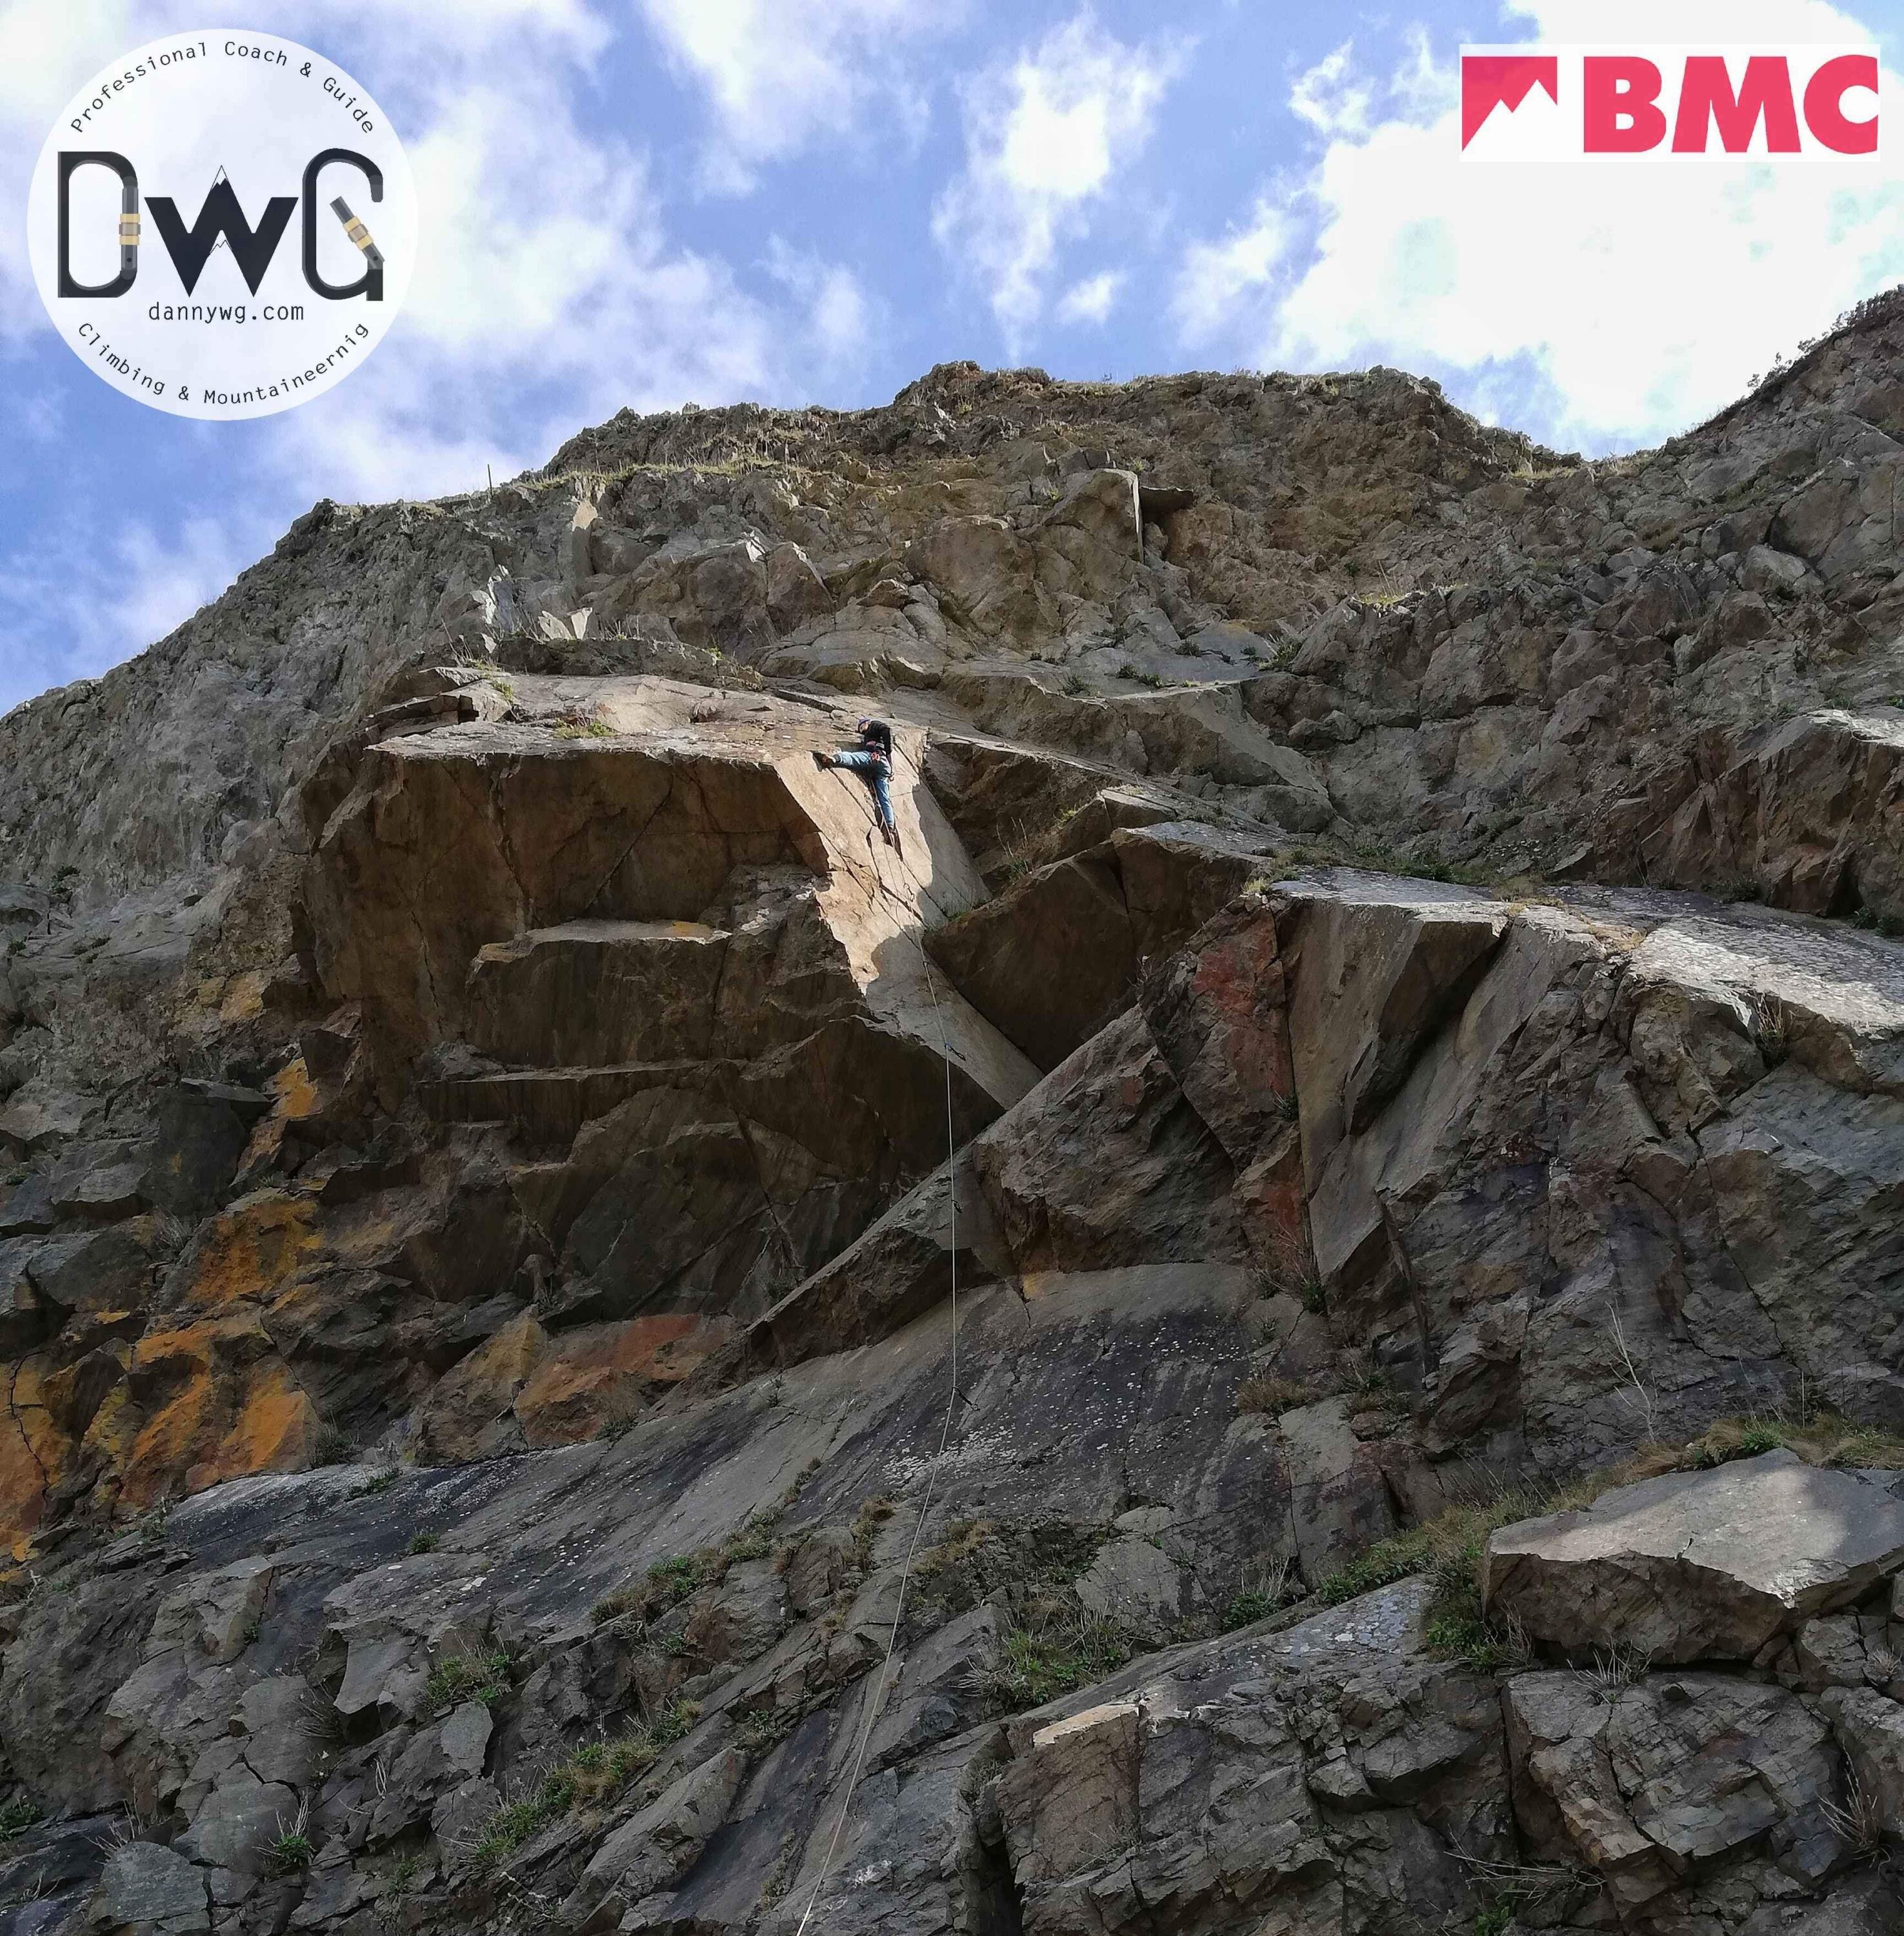 BMC sport climbing courses for young people